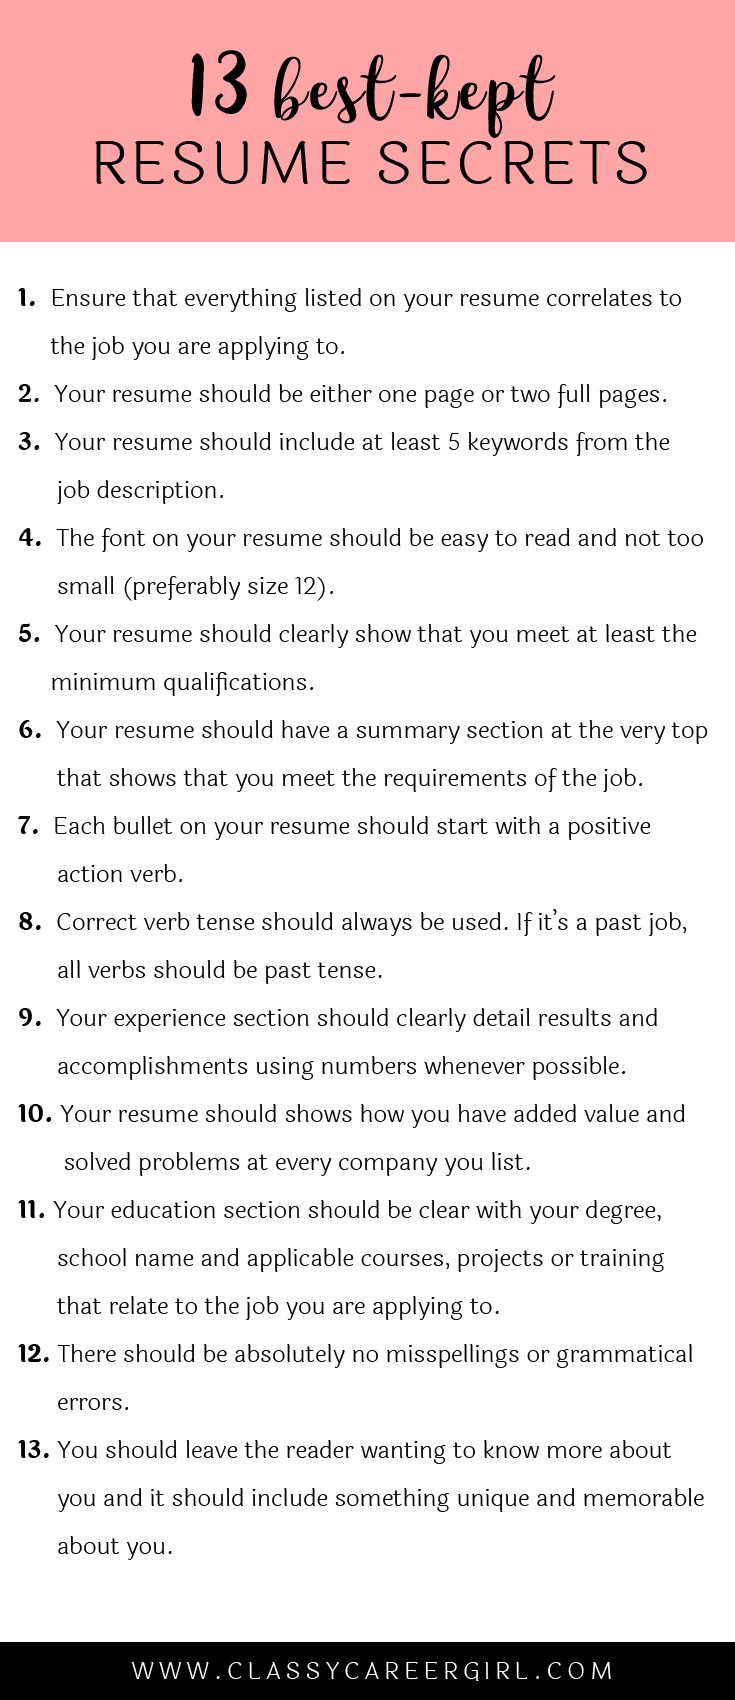 Opposenewapstandardsus  Marvellous  Ideas About Resume On Pinterest  Cv Format Resume Cv And  With Fetching Some Hiring Managers Will Toss Your Resume Out If You Dont Know These  With Archaic Template For Resume Free Also Retail Manager Resume Examples In Addition Supervisor Resume Sample And Pretty Resume Templates As Well As Apprentice Electrician Resume Additionally Actually Free Resume Builder From Pinterestcom With Opposenewapstandardsus  Fetching  Ideas About Resume On Pinterest  Cv Format Resume Cv And  With Archaic Some Hiring Managers Will Toss Your Resume Out If You Dont Know These  And Marvellous Template For Resume Free Also Retail Manager Resume Examples In Addition Supervisor Resume Sample From Pinterestcom